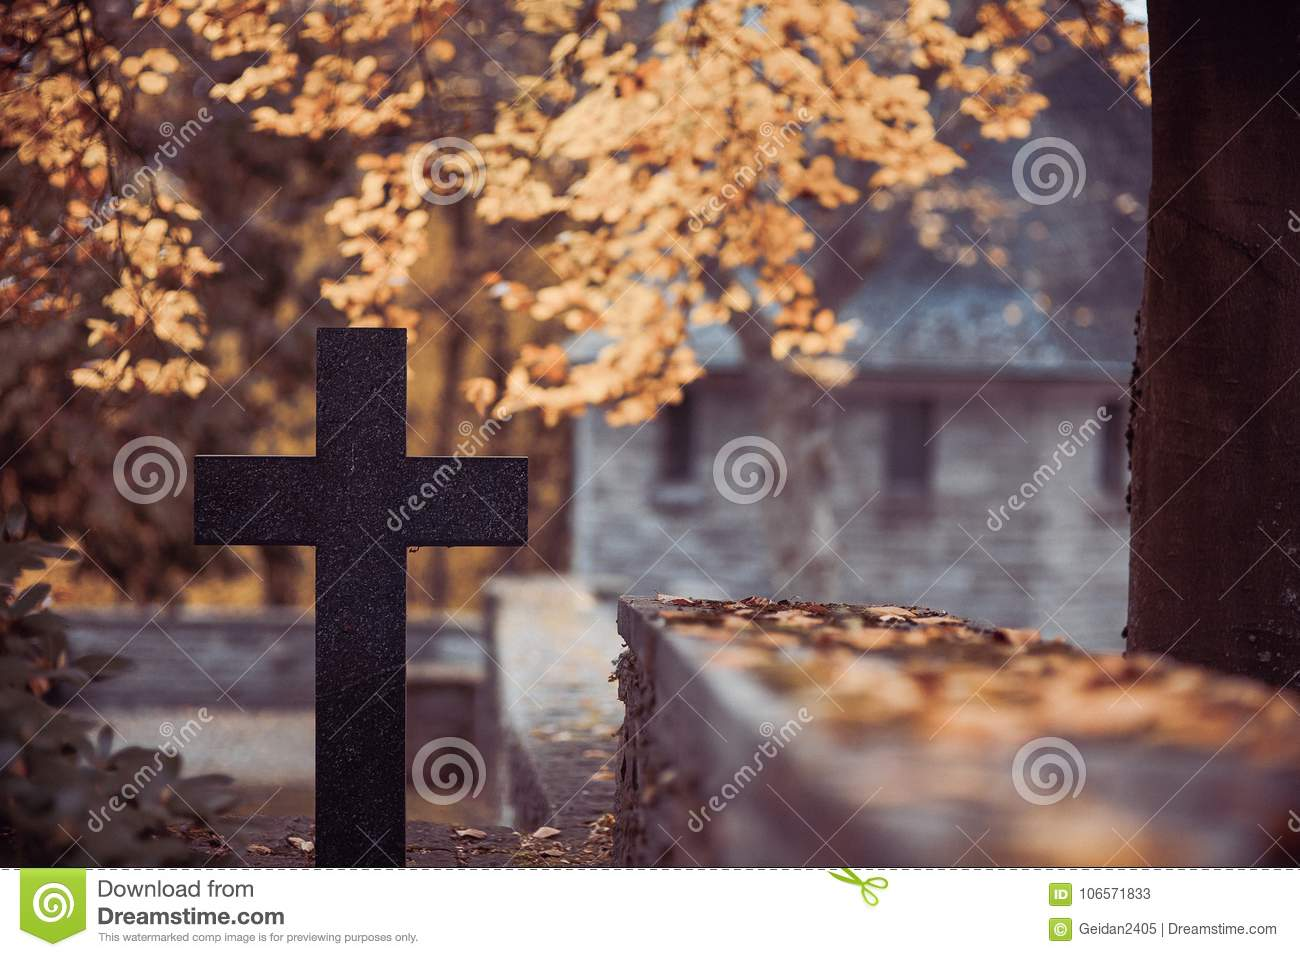 Black cross in the cemetery with mausoleum